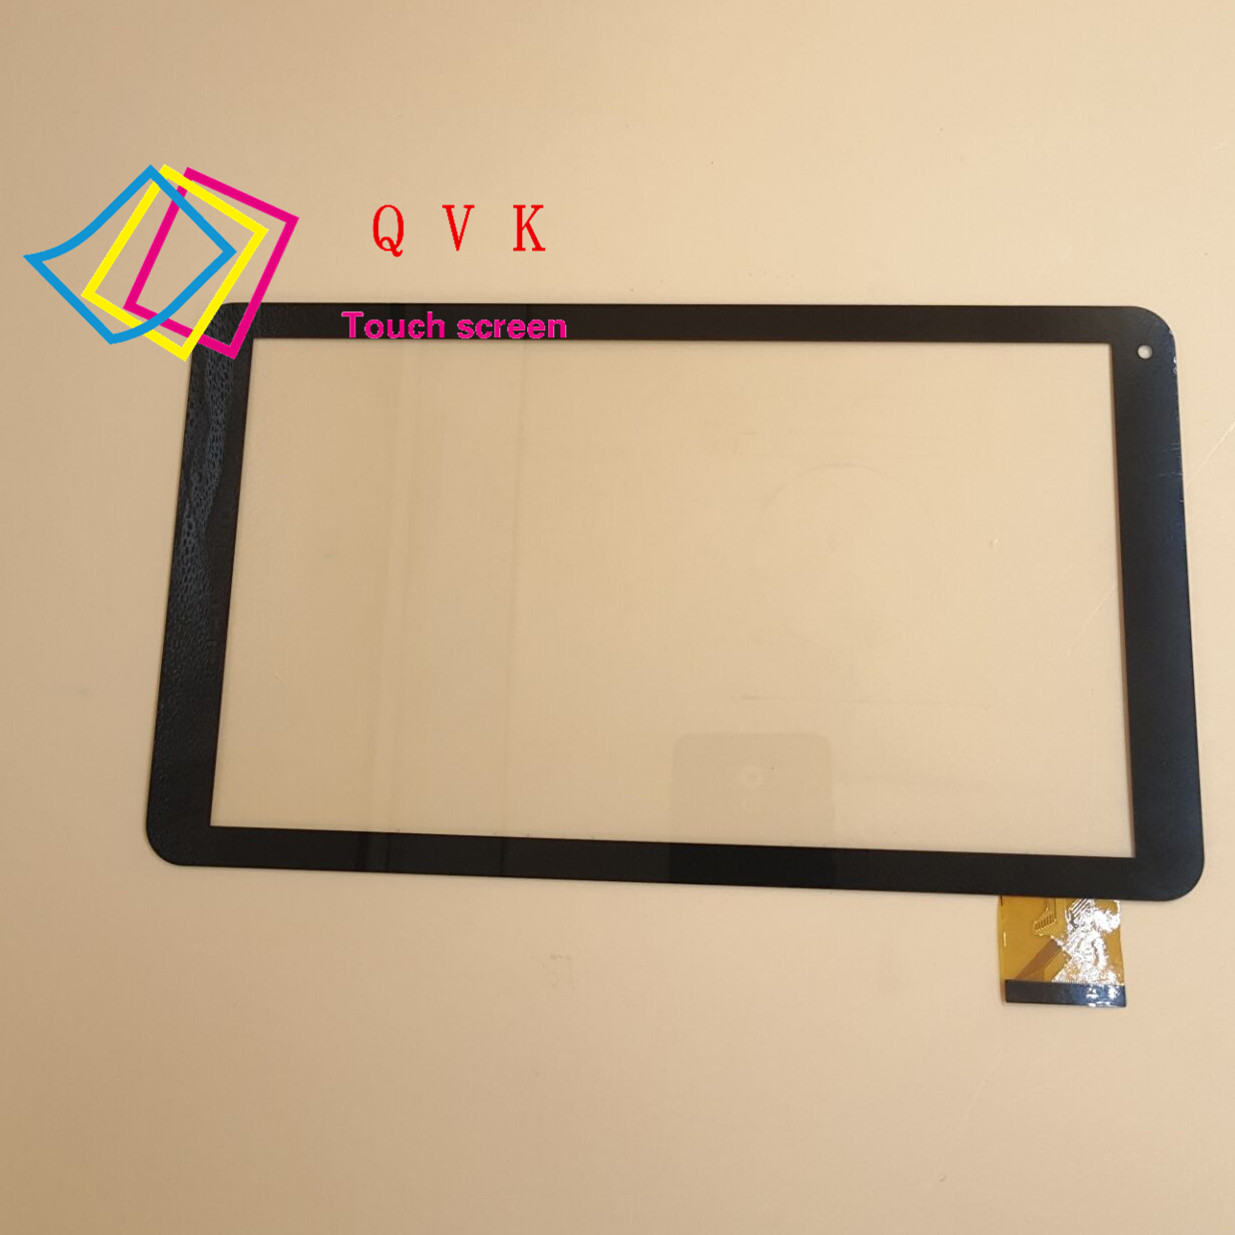 10.1 inch for WOXTER QX 105 QX105 Tablet touch capacitance screen outside UK101016G-01_Fpc V0.1 ZHC-0364B a for carbaystar t805c touch screen display on the outside handwritten screen 10 1 inch tablet capacitance touch screen